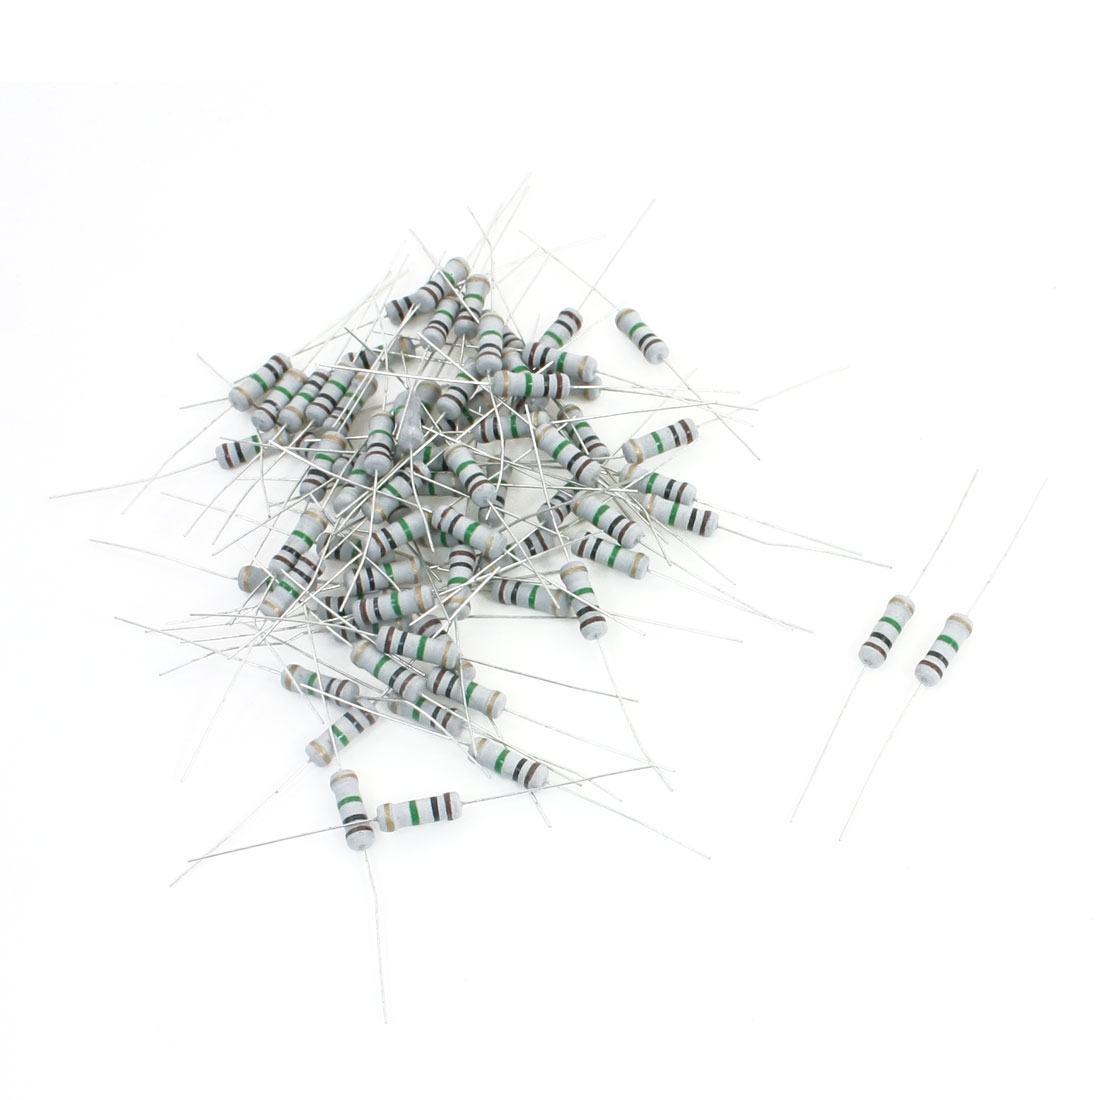 60Pcs 1M Ohm 1W Power 5% Tolerance 4-Color Ring Axial Lead Type Through Hole Mounting Carbon Film Fixed Resistors